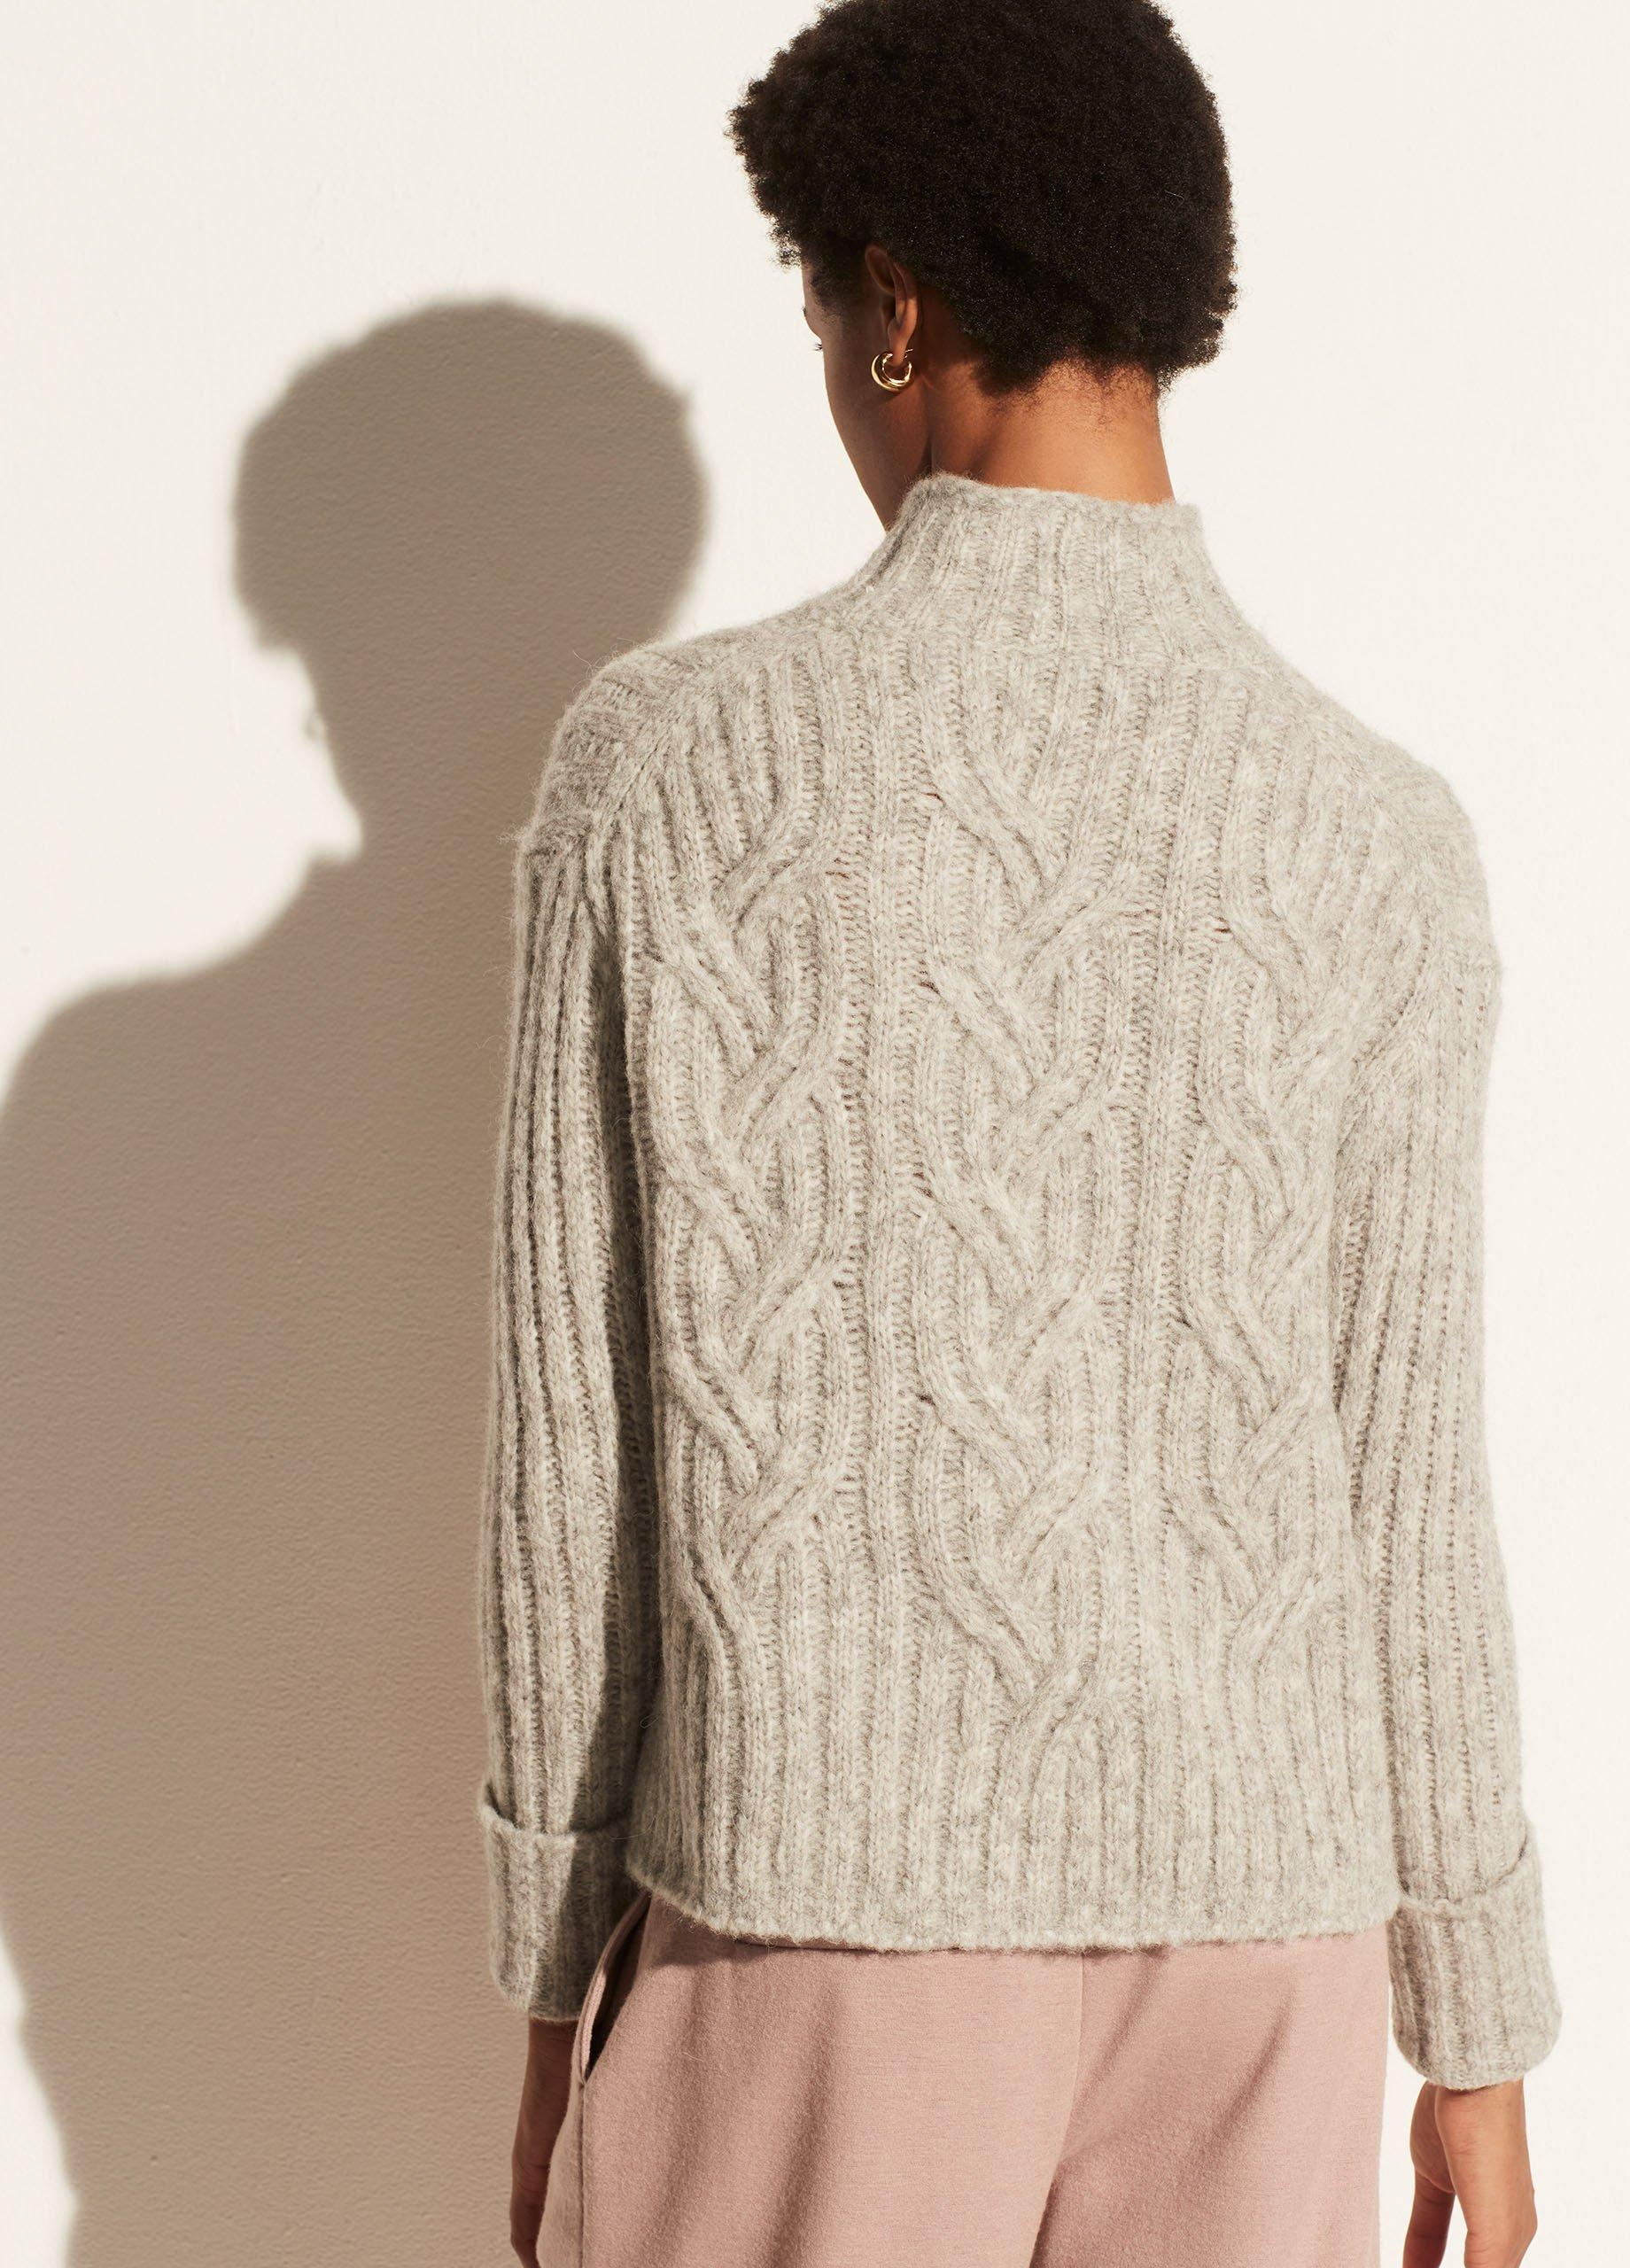 Mirrored Cable Turtleneck